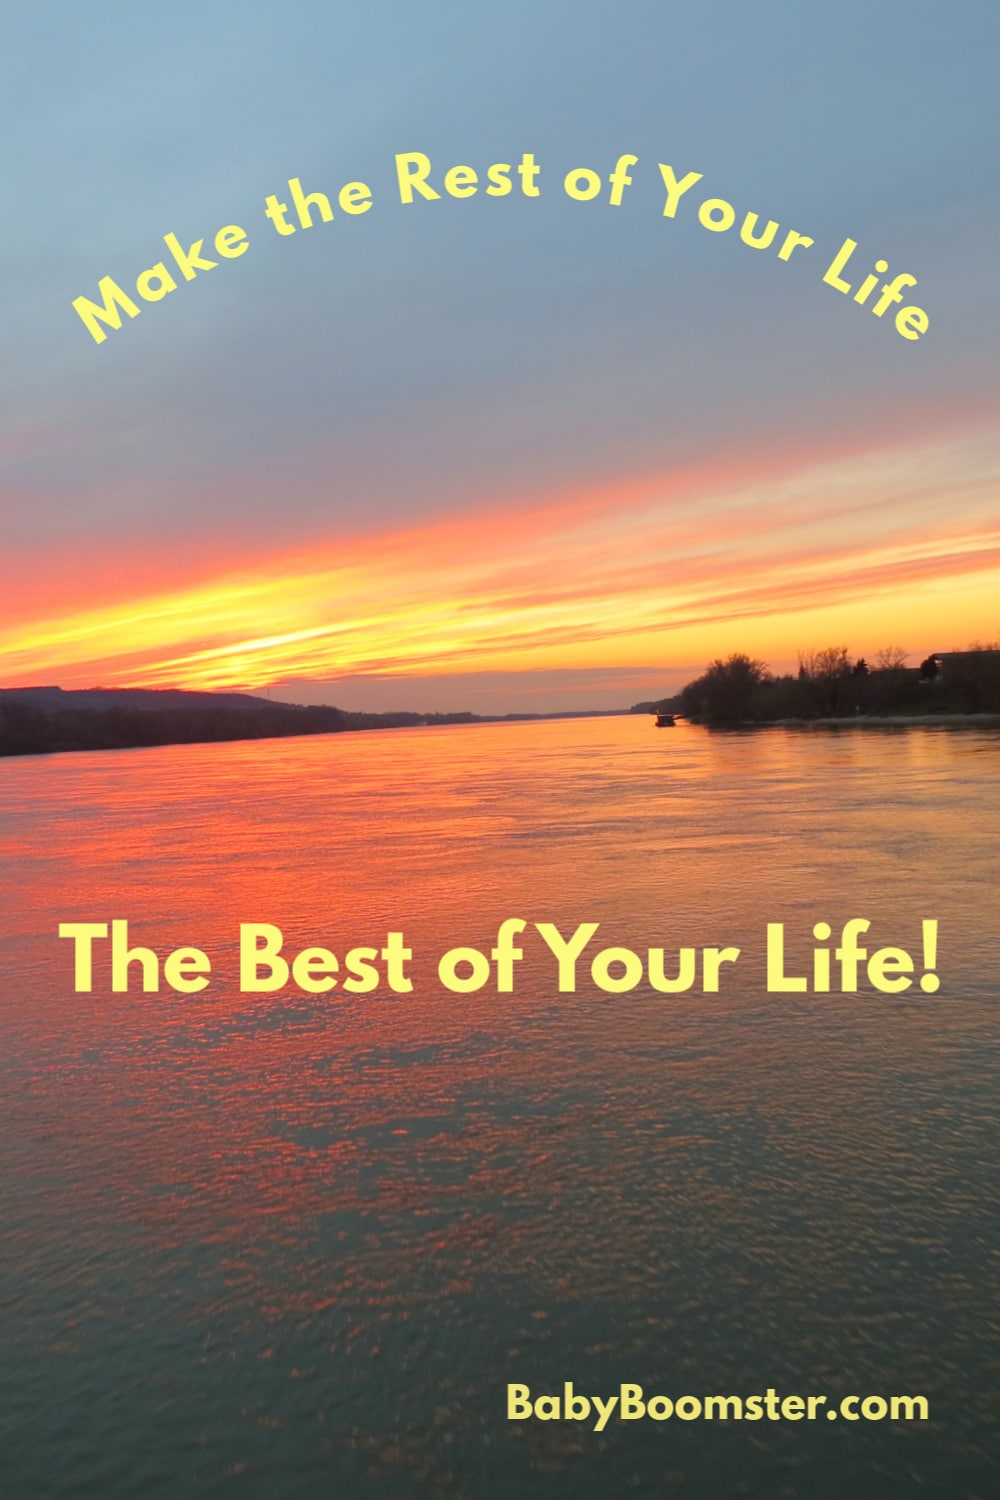 Make the rest of your life, the best of your life - a #mantra for Baby Boomers #womenover50 #midlife